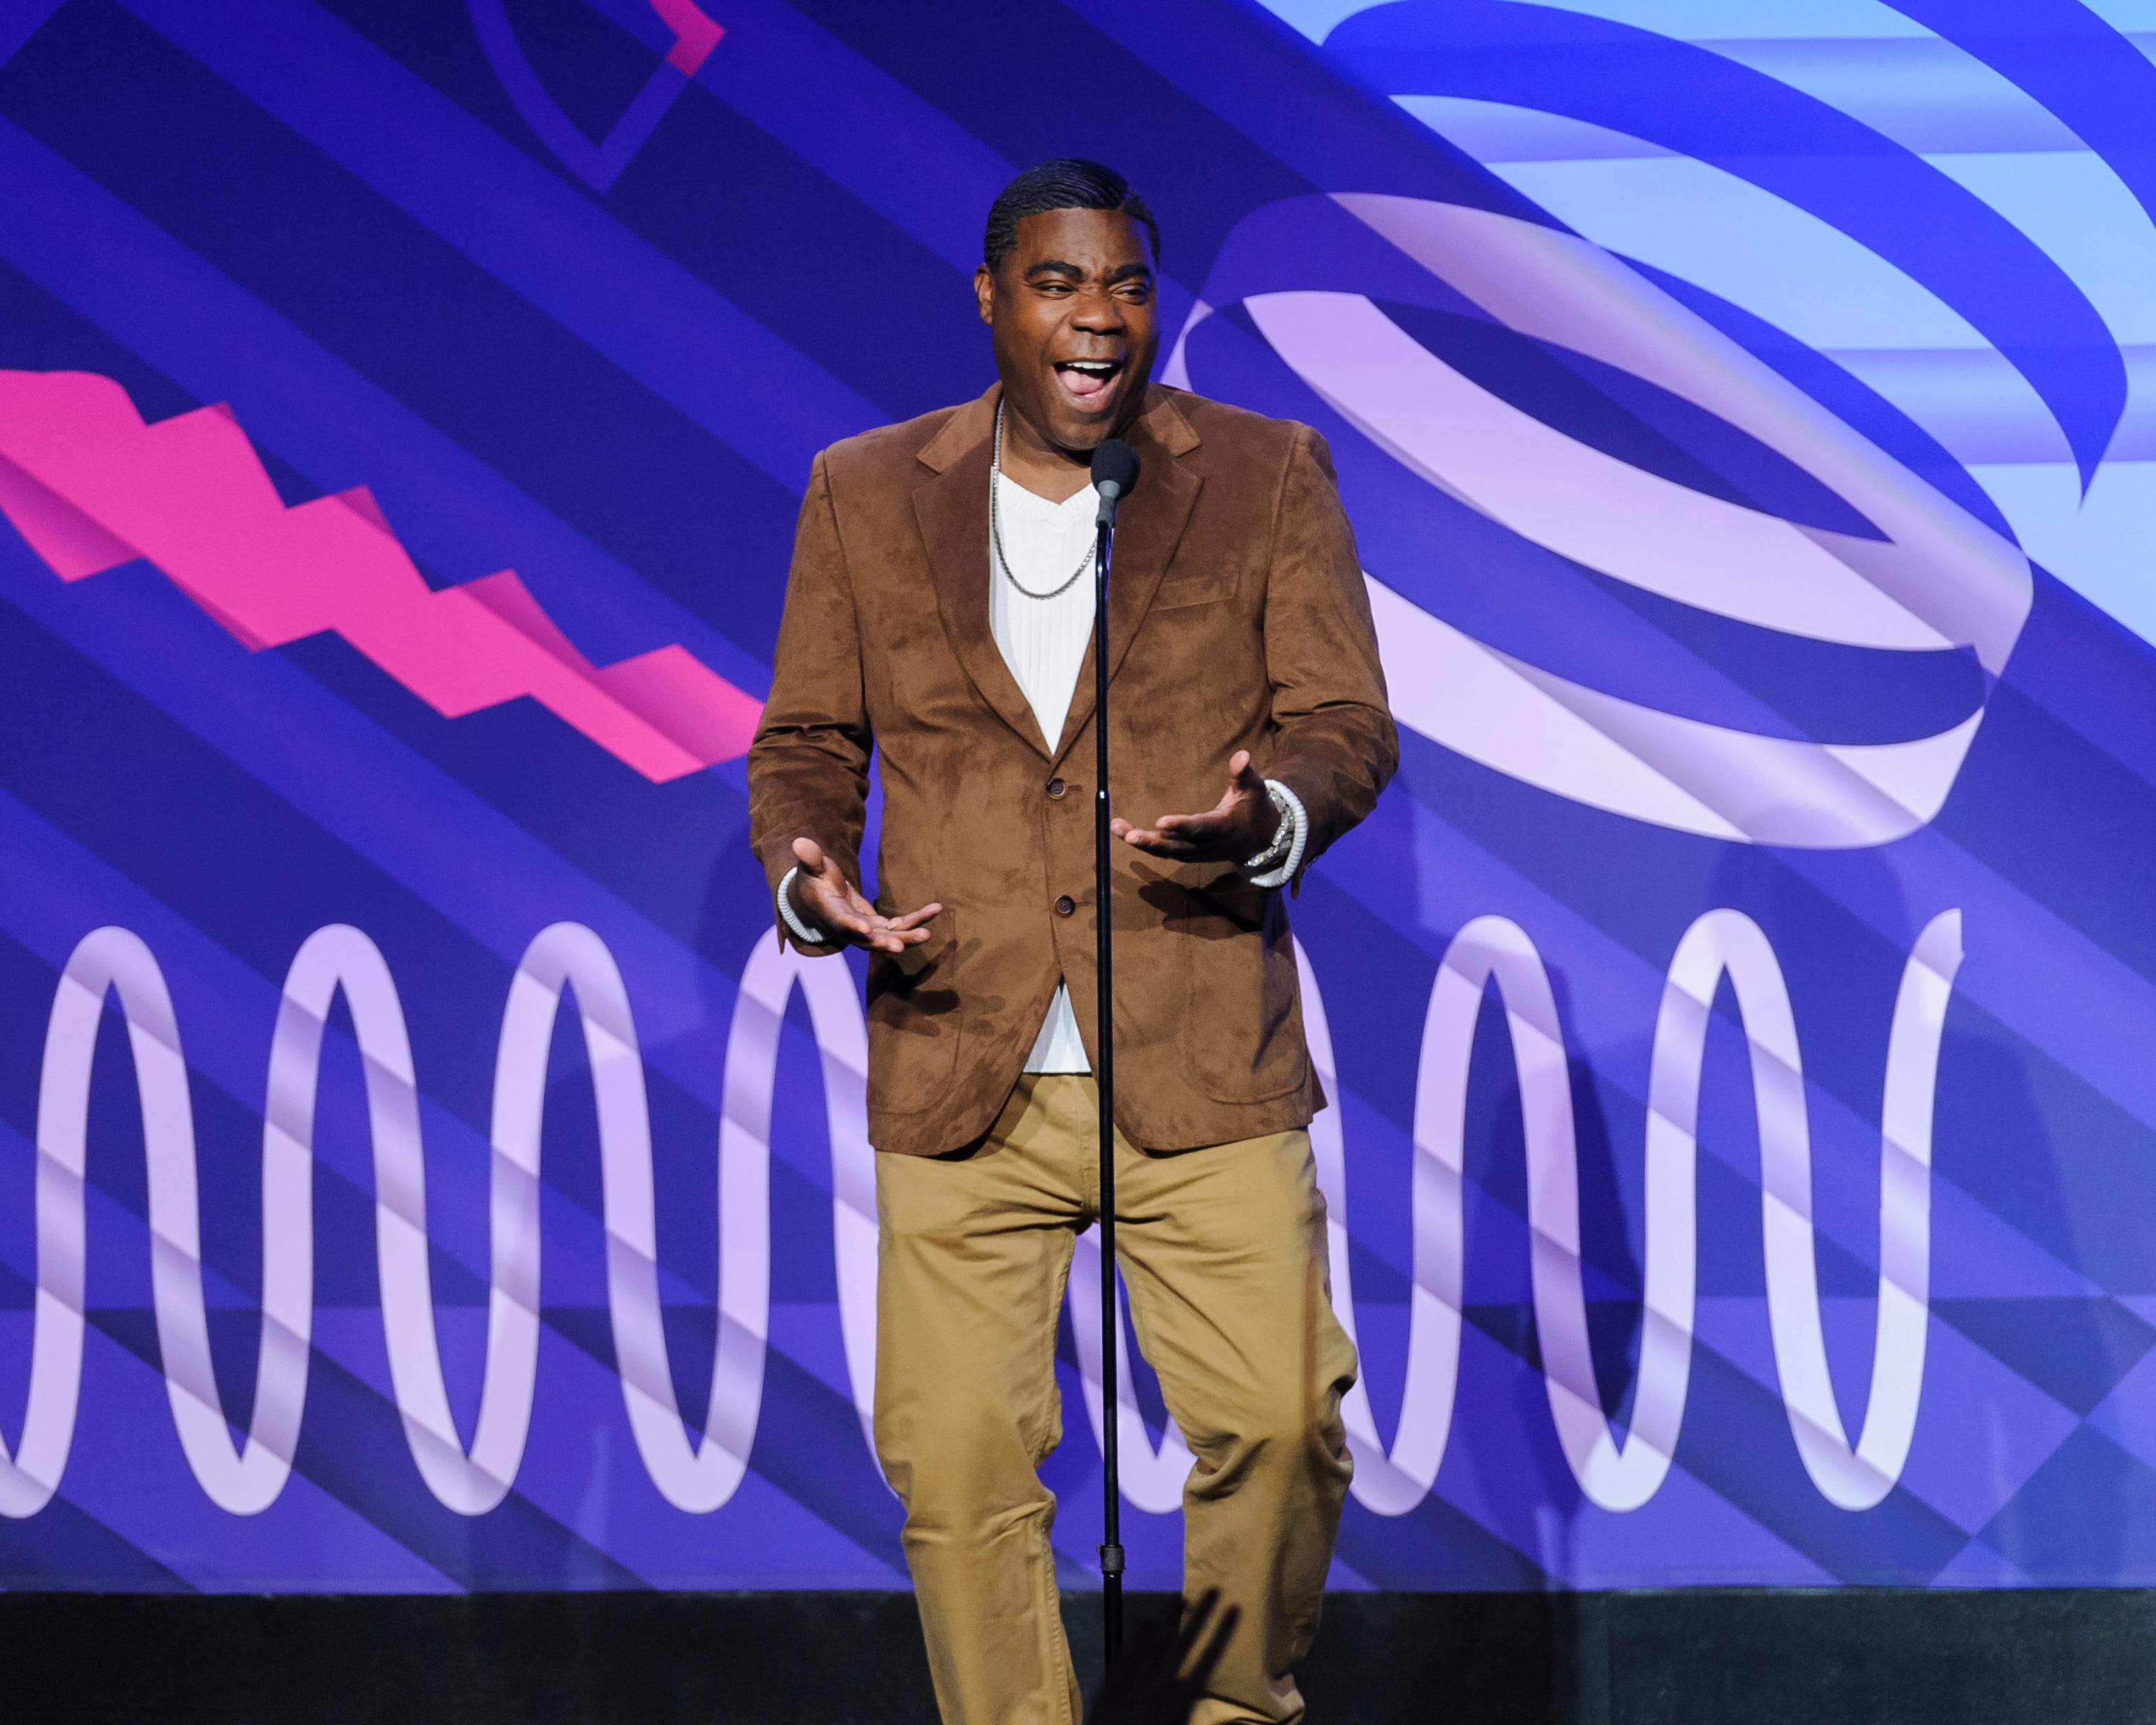 Tracy Morgan defends Trump amid coronavirus:  Now is not the time for blame